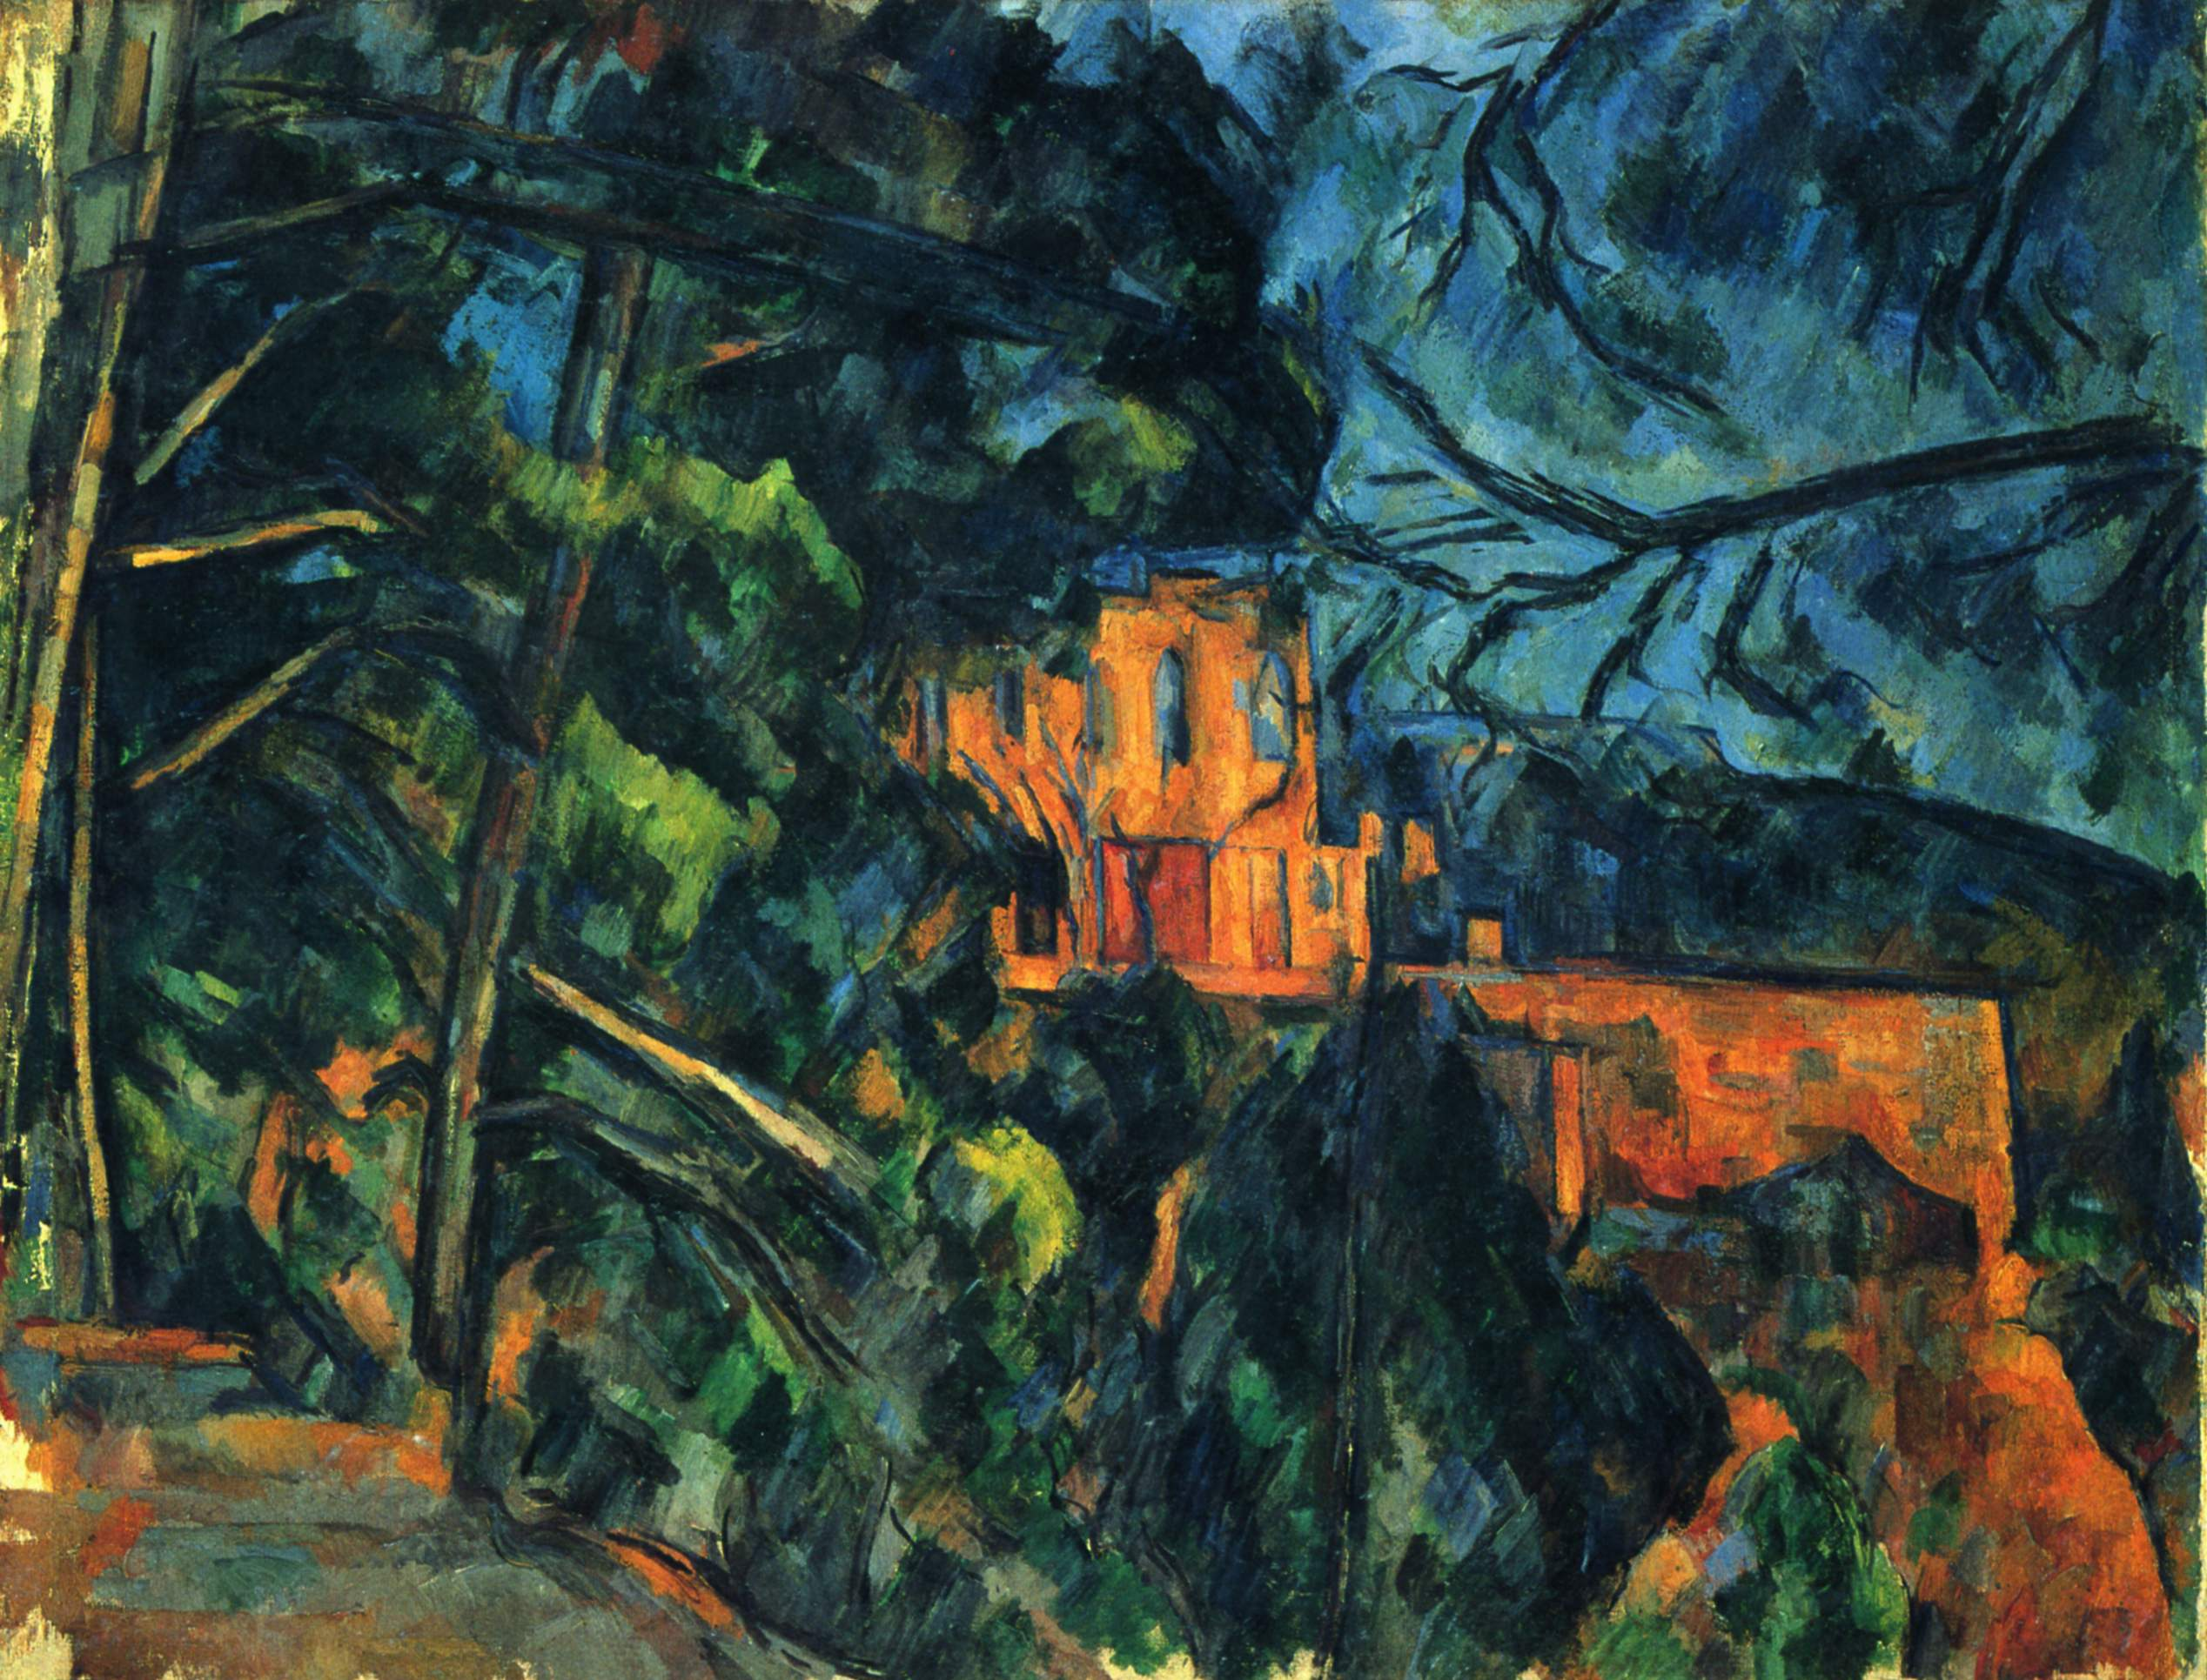 merleau ponty essay cezanne In his essay cézanne's doubt, in which he identifies paul cézanne's impressionistic theory of painting as analogous to his own concept of radical reflection, the attempt to return to, and reflect on, prereflective consciousness, merleau-ponty identifies science as the opposite of art in merleau-ponty's account, whereas art is.